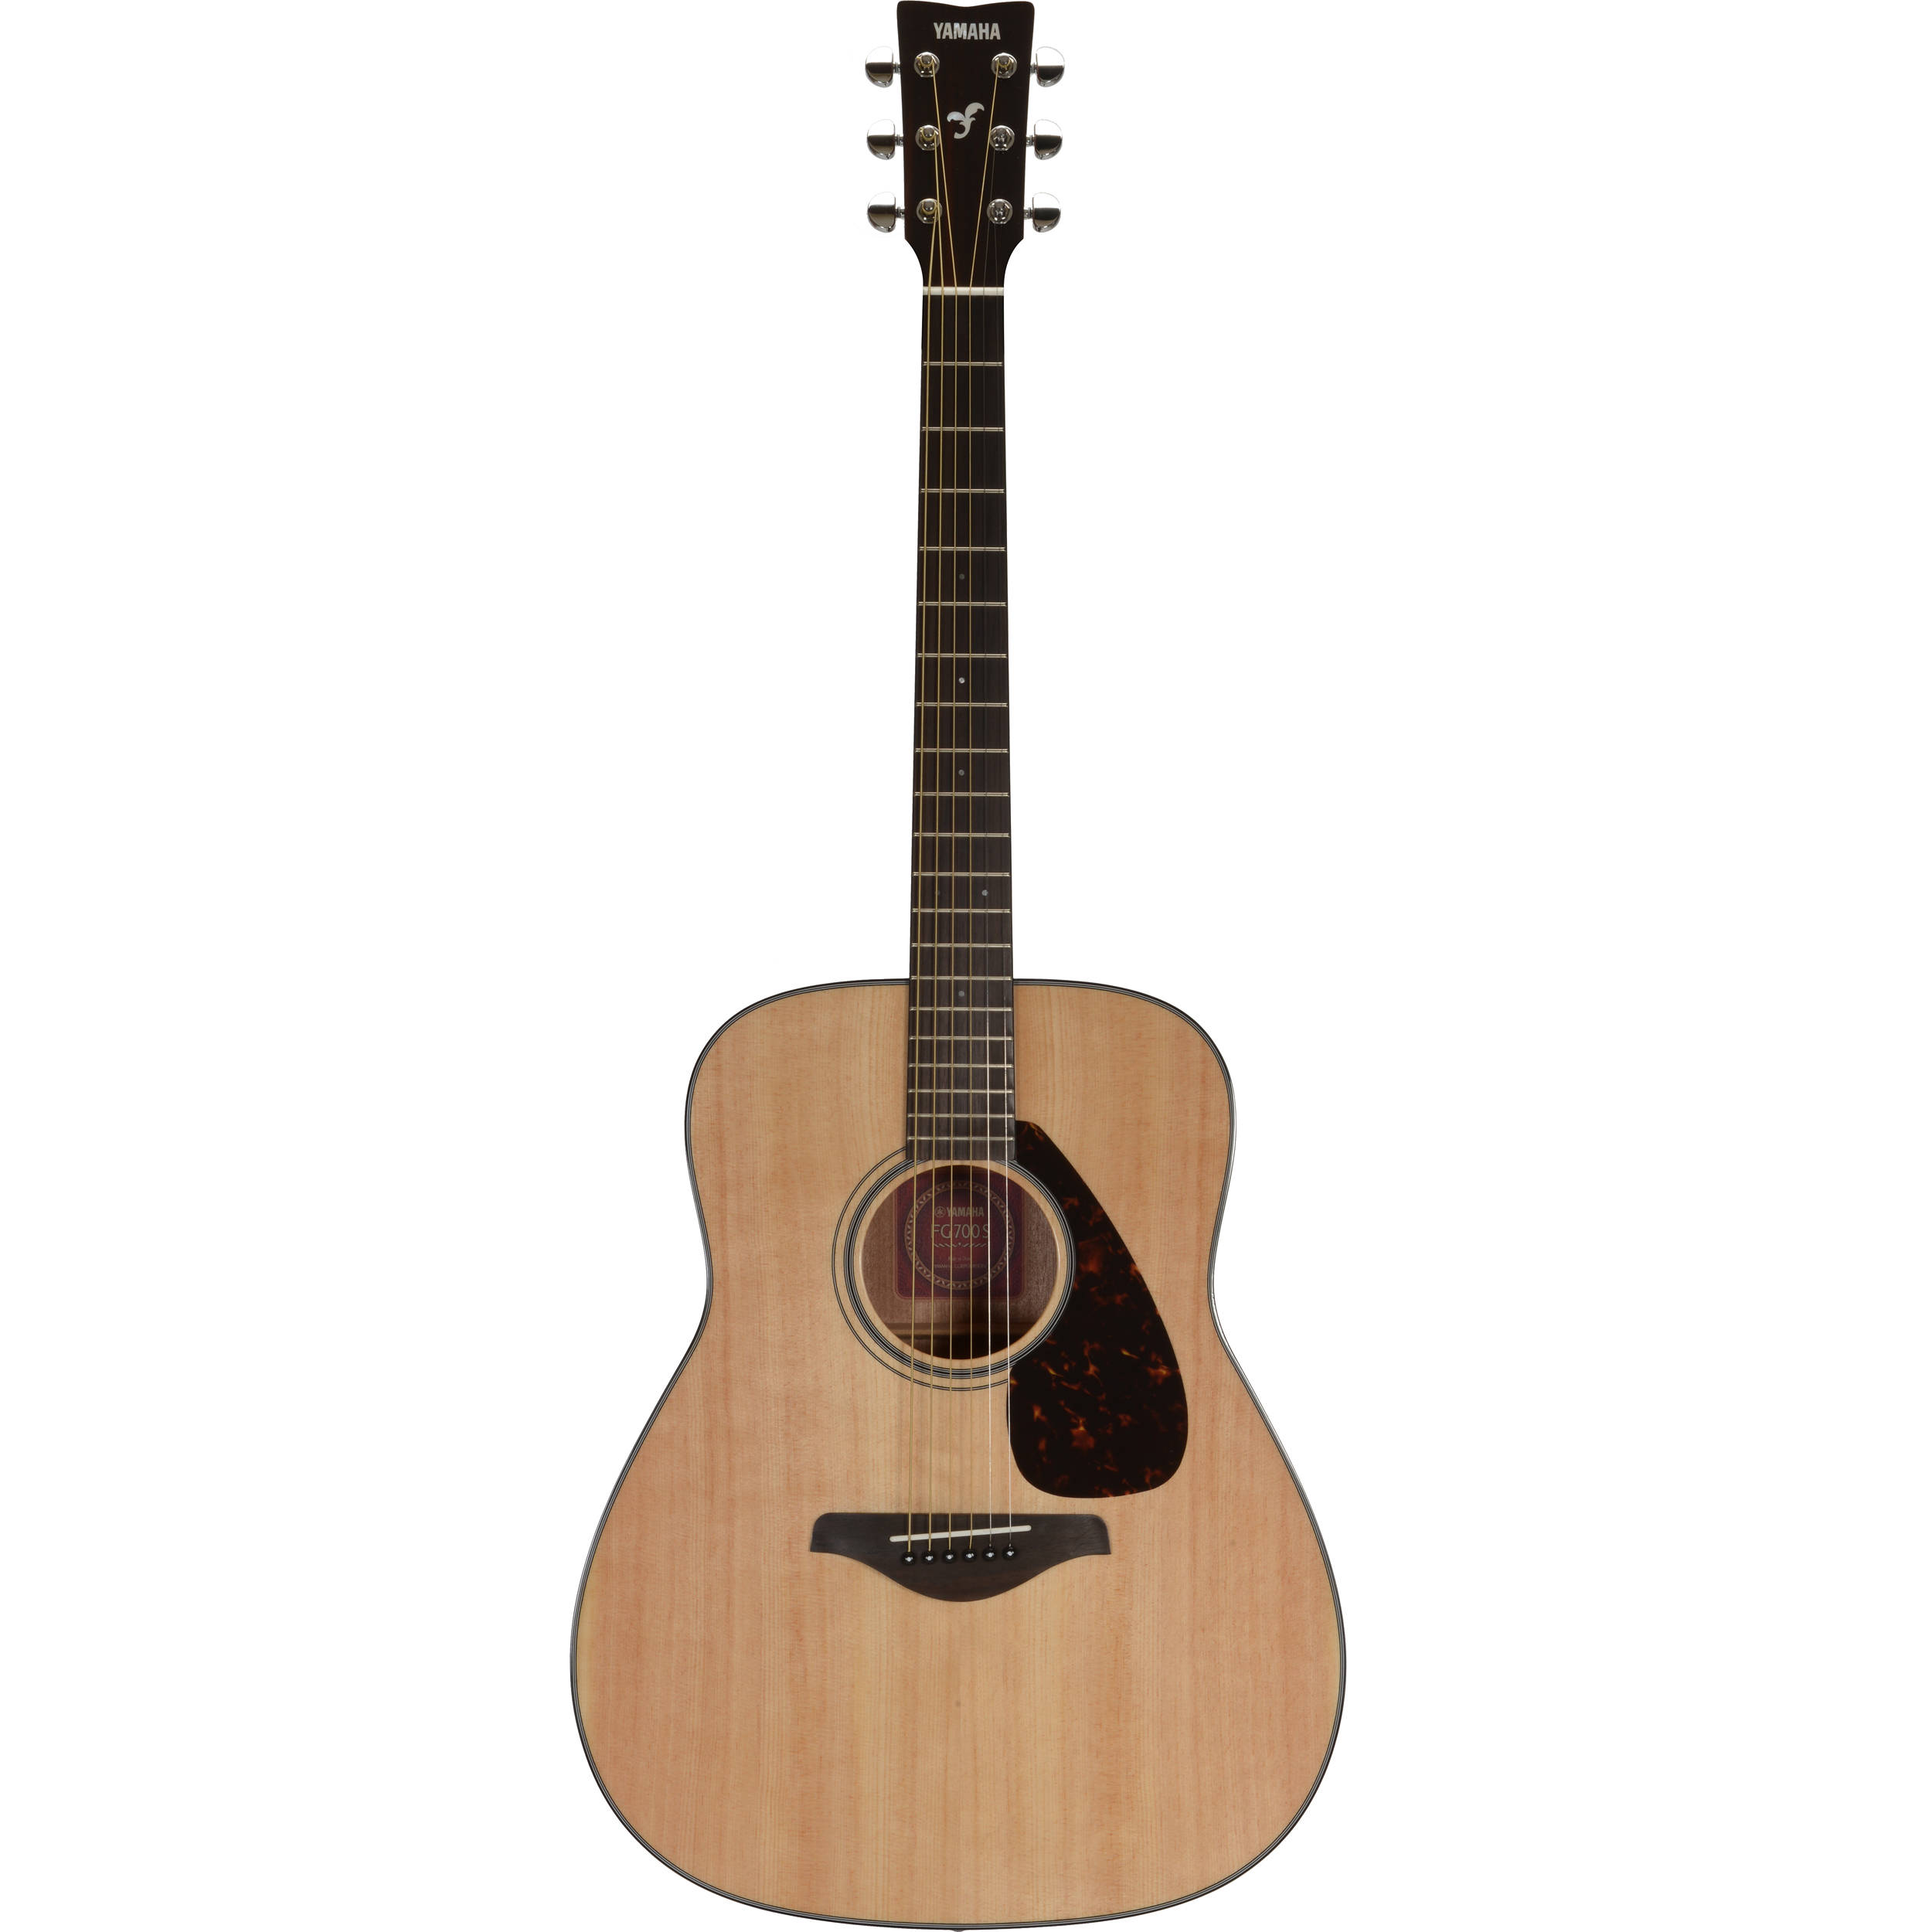 Yamaha fg700s solid top acoustic guitar natural fg700s b h for Yamaha solid top